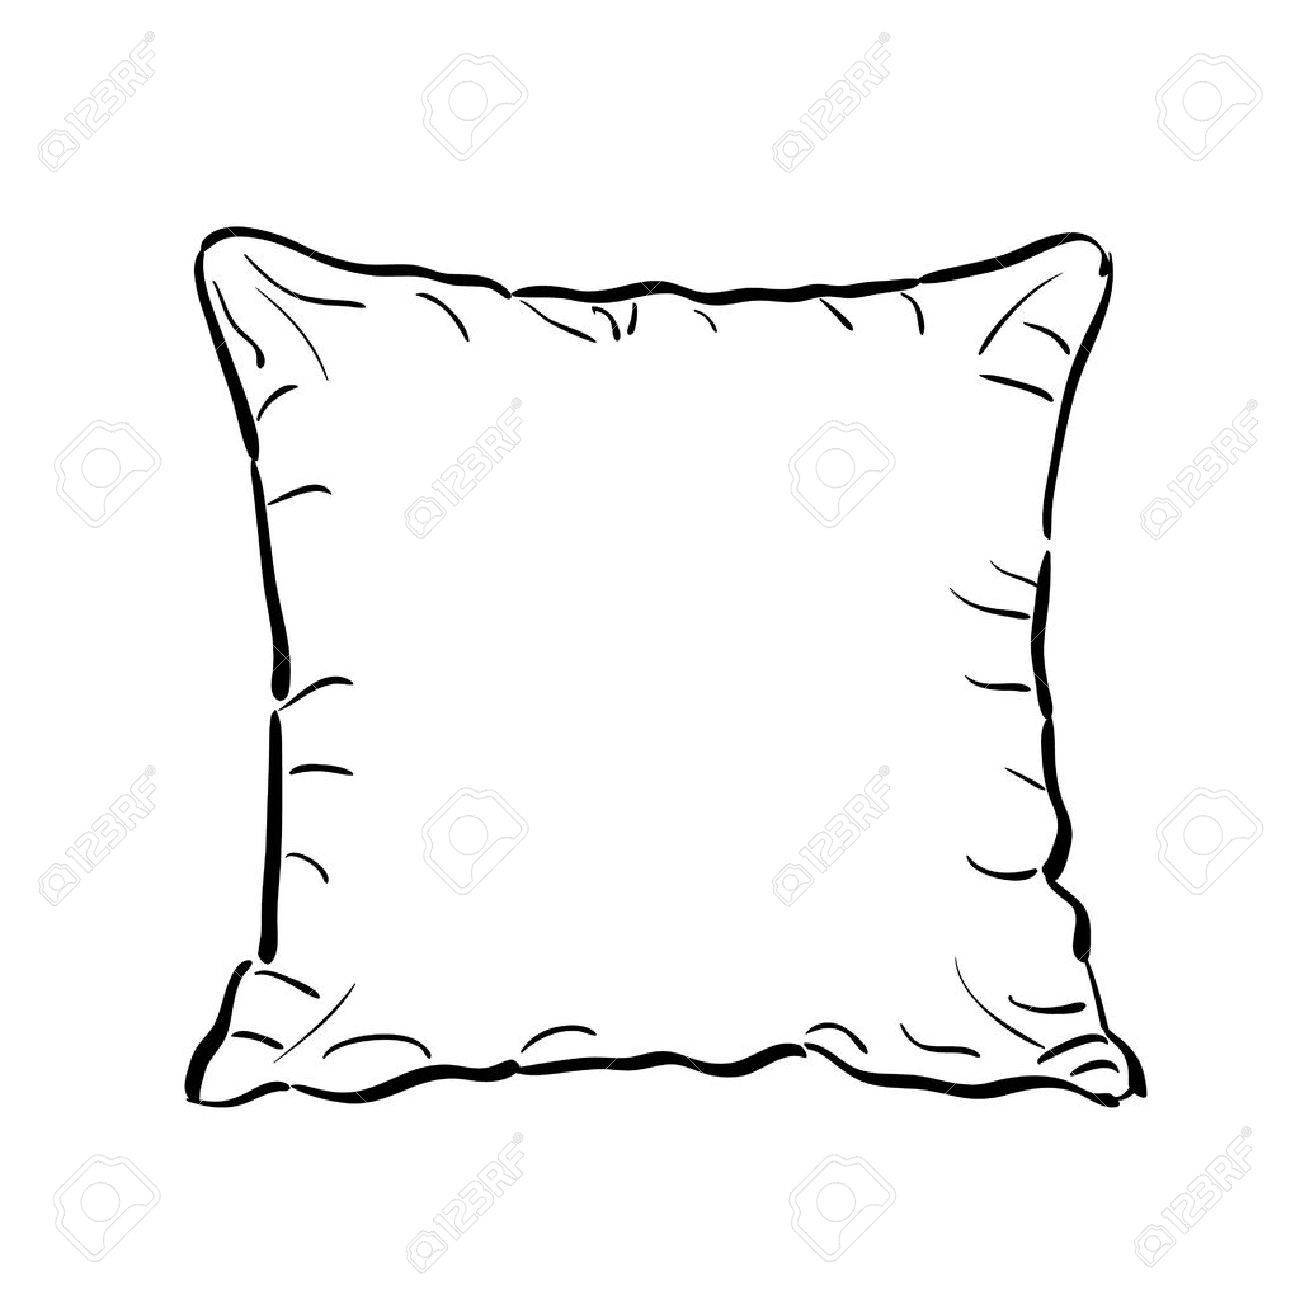 Pillows clipart black and white 9 » Clipart Portal.